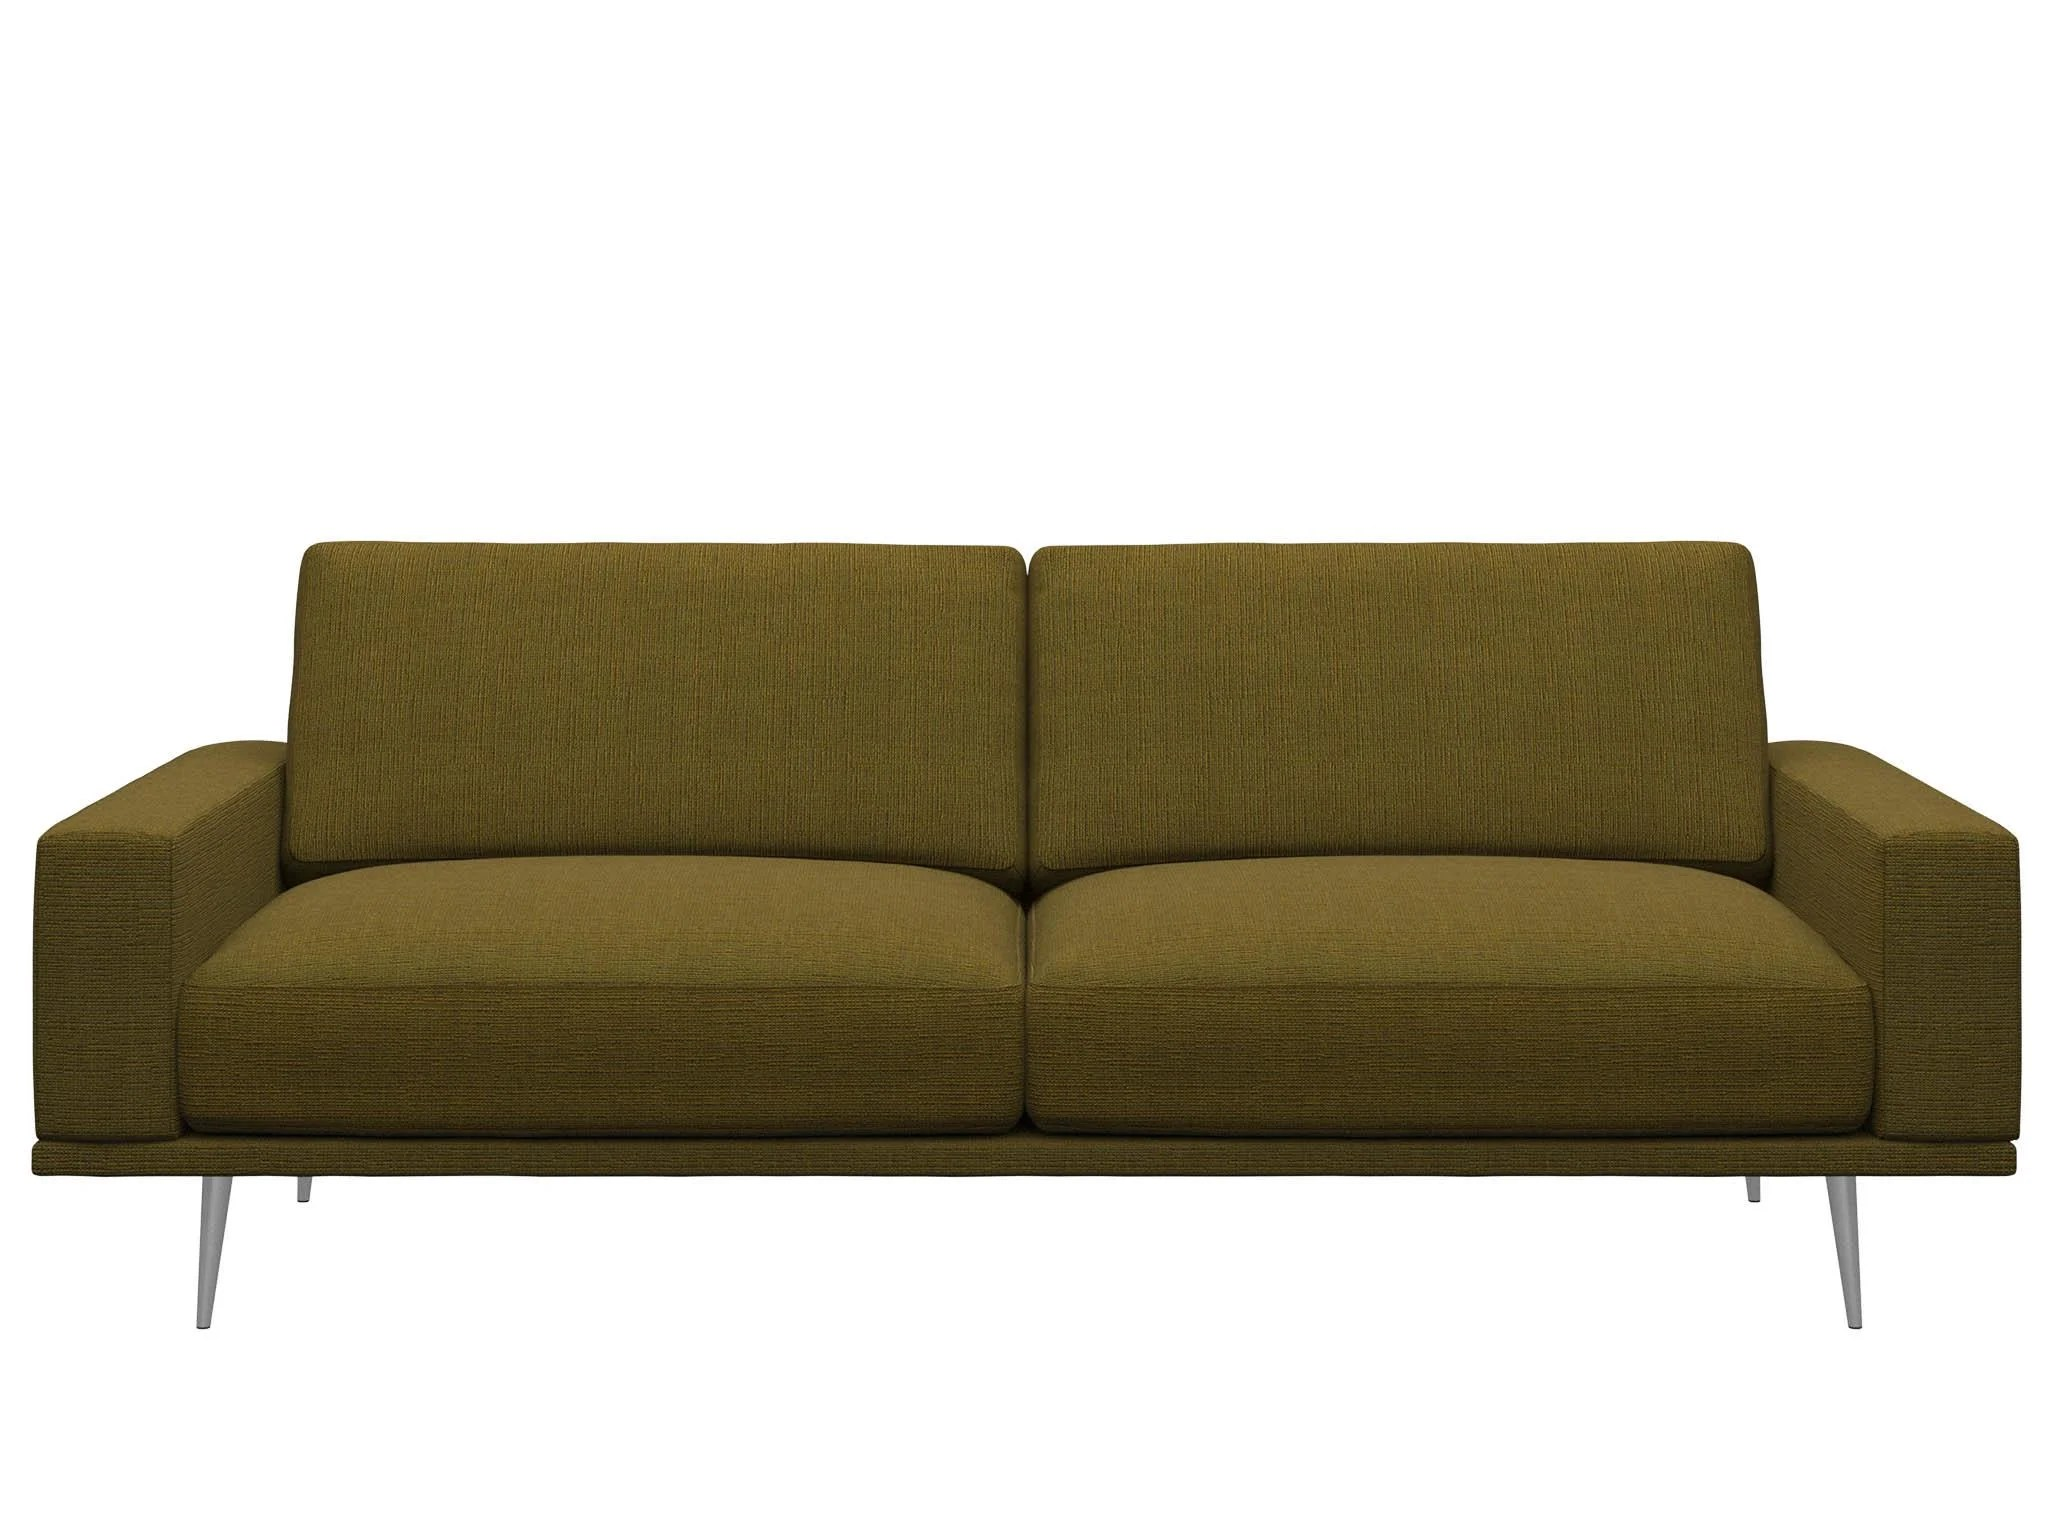 one and half seater sofa chesterfield fabric australia 8 best two sofas the independent seventies are cool again mustard yellow is new millennial pink making this modish 2 5 yes we ve cheated given you an extra